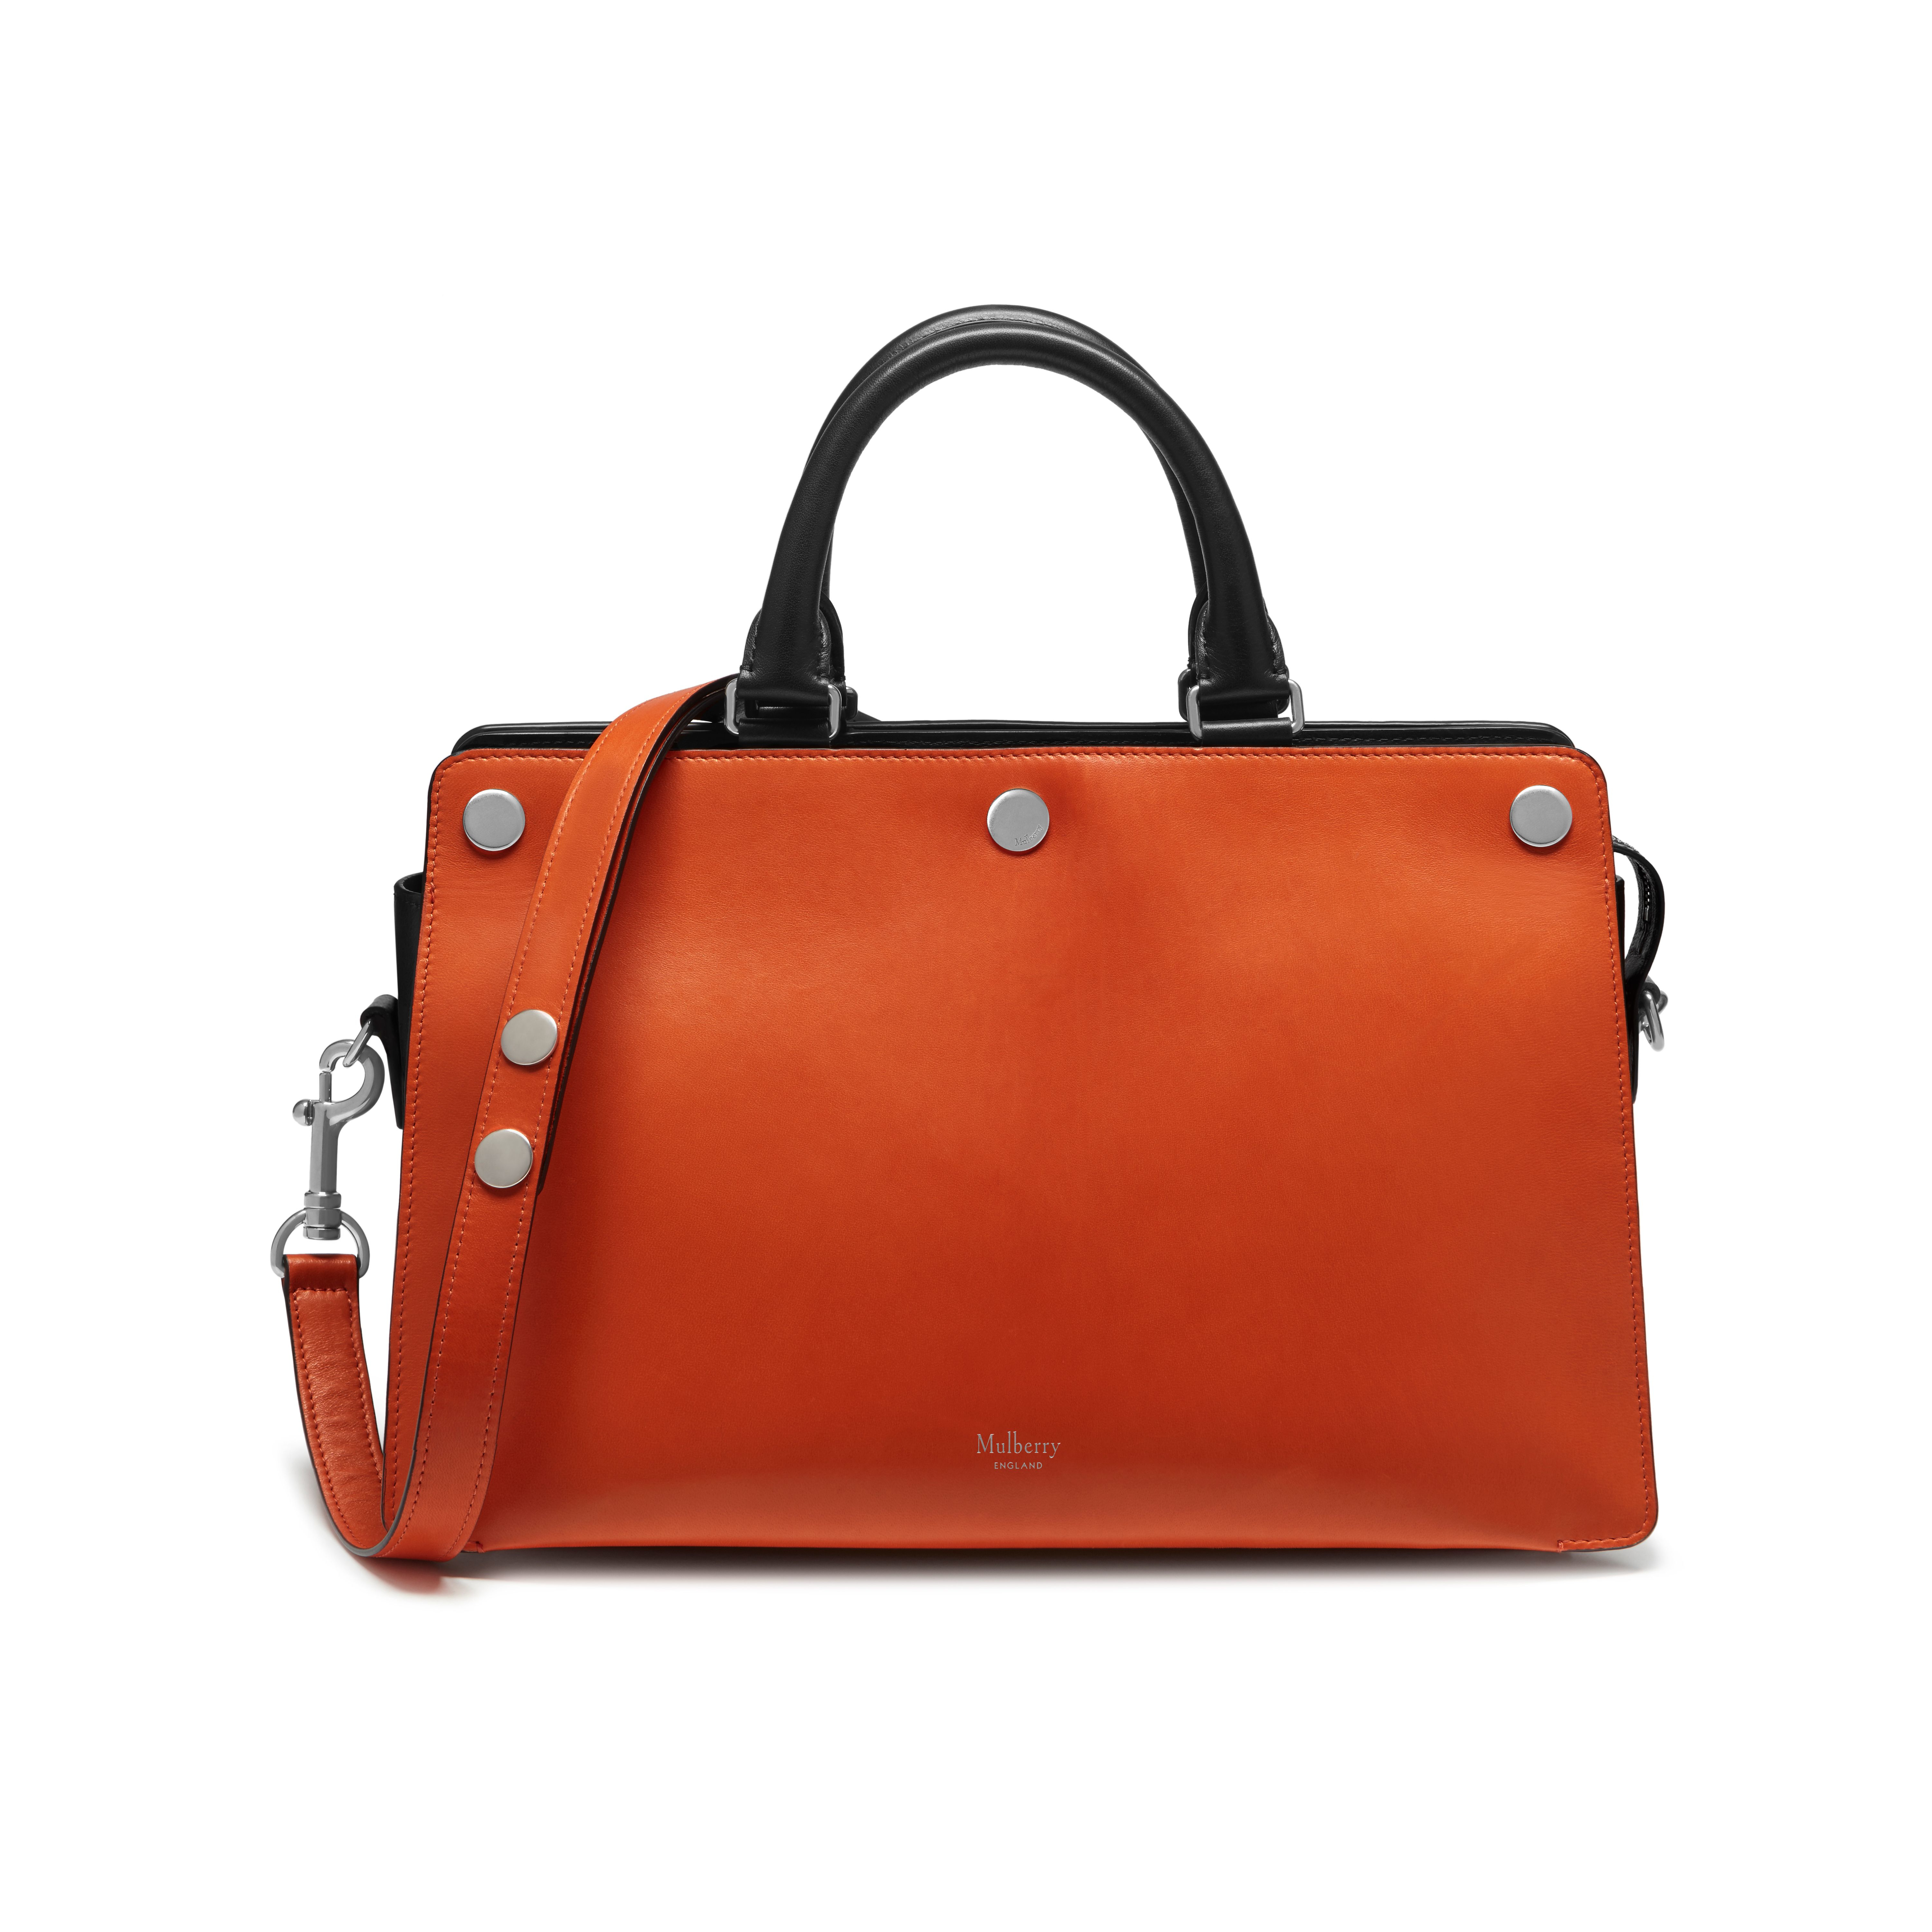 431e1fe733 Lyst - Mulberry Chester Leather Satchel in Orange